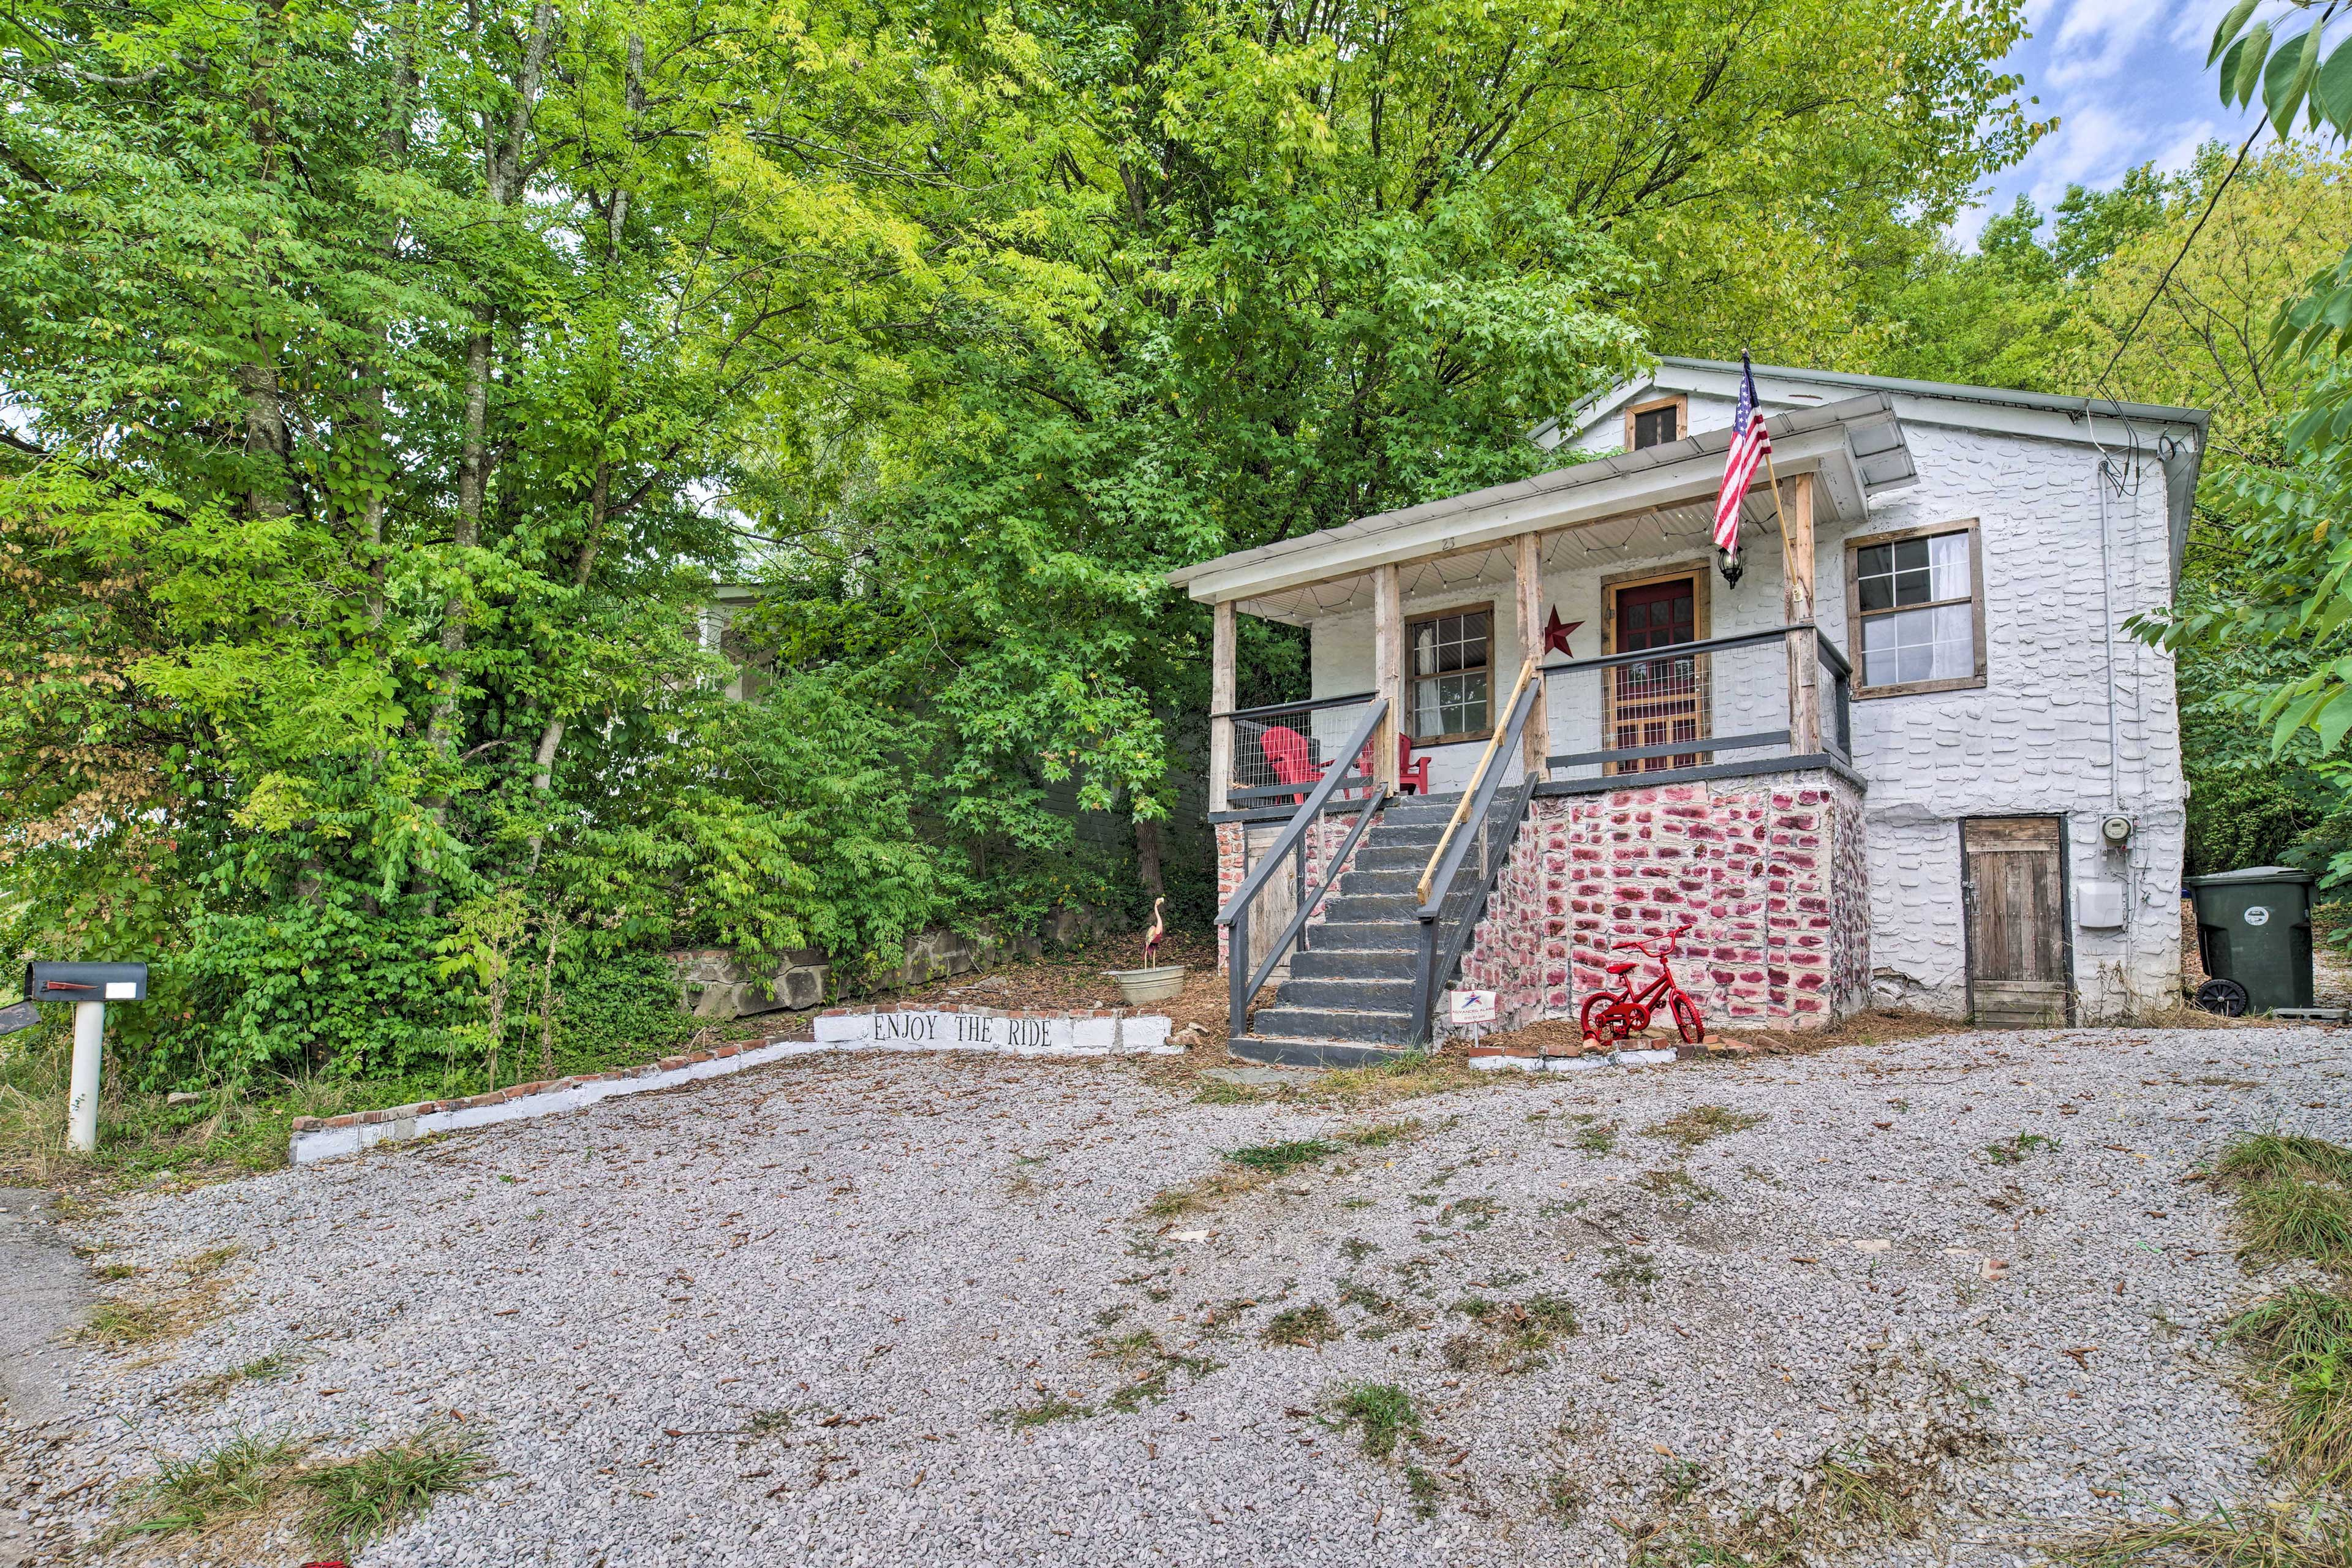 Enjoy the ride at this vacation rental house in Chattanooga!